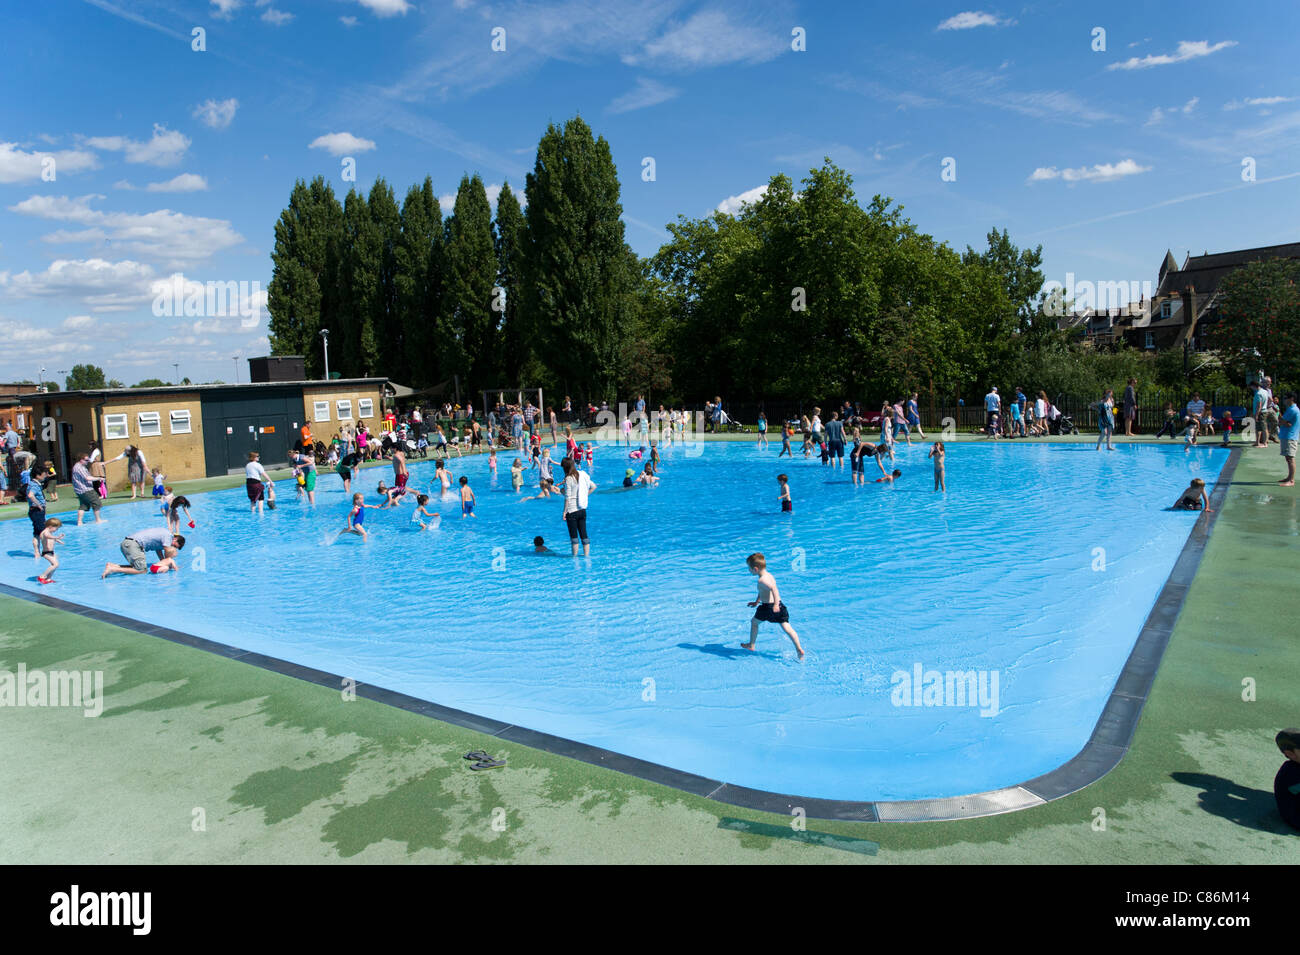 Toddlers paddling pool at hampstead heath london england uk stock photo royalty free image for Hampstead heath park swimming pool